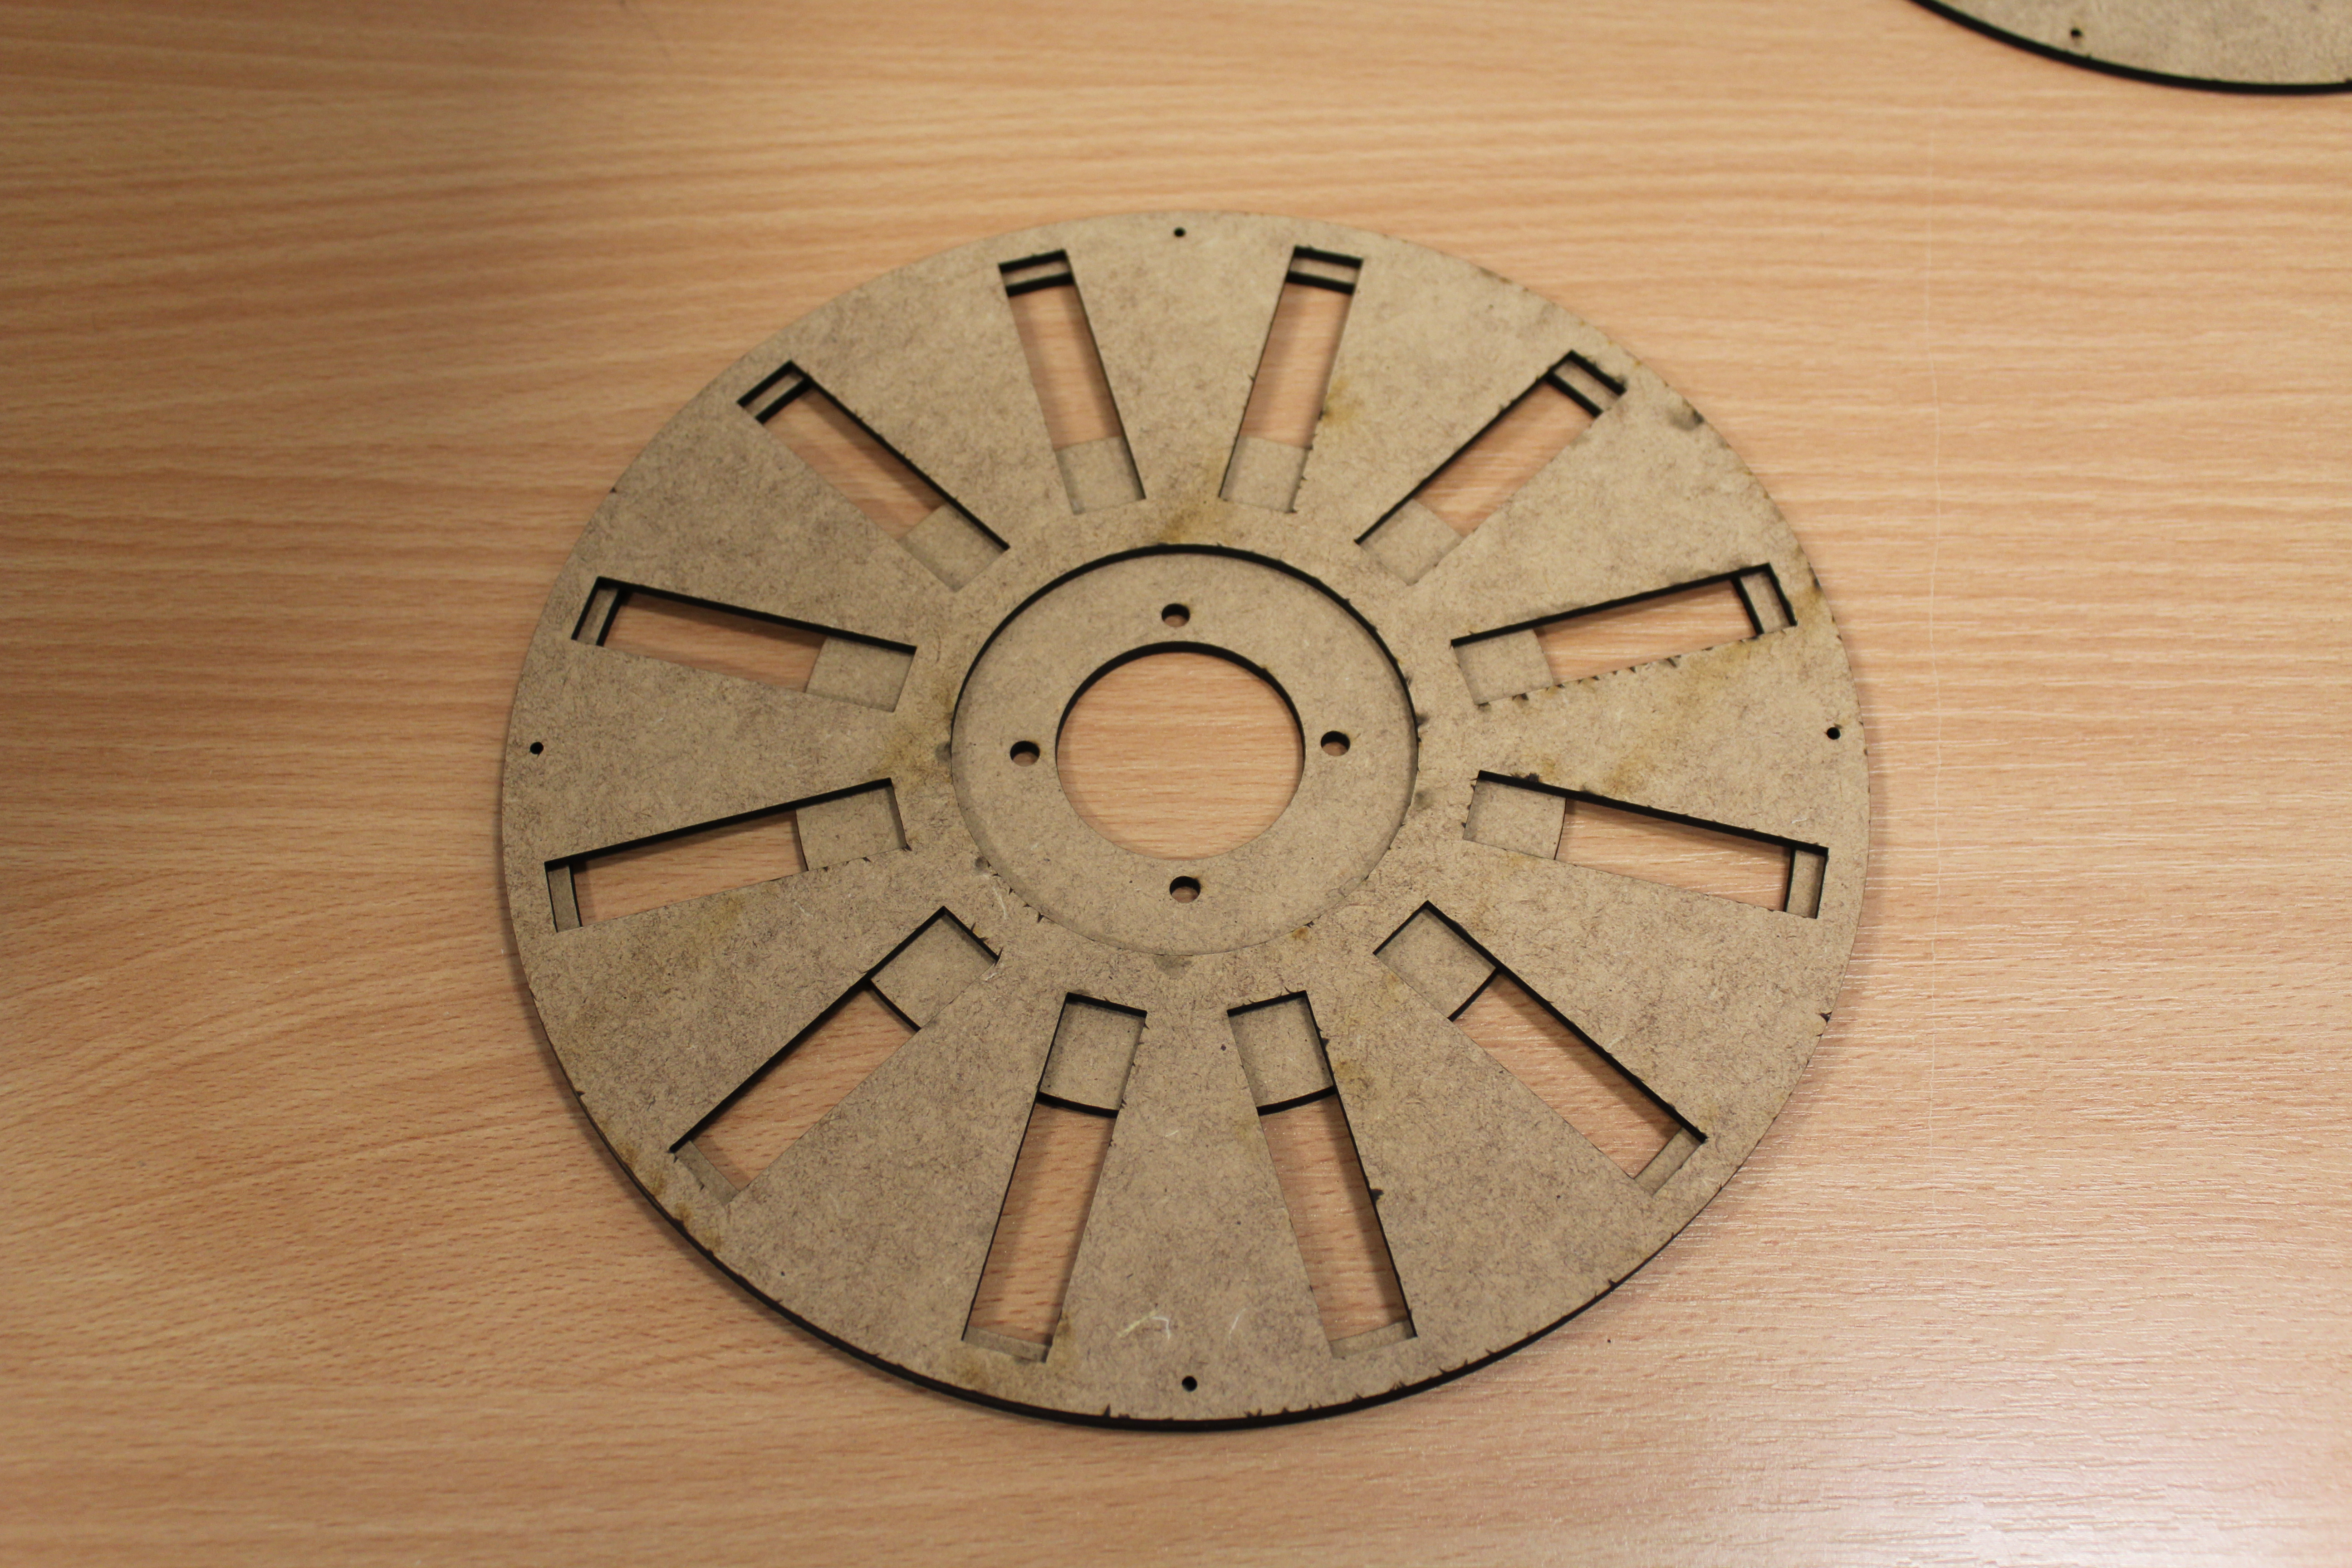 Picture of The Clock Face